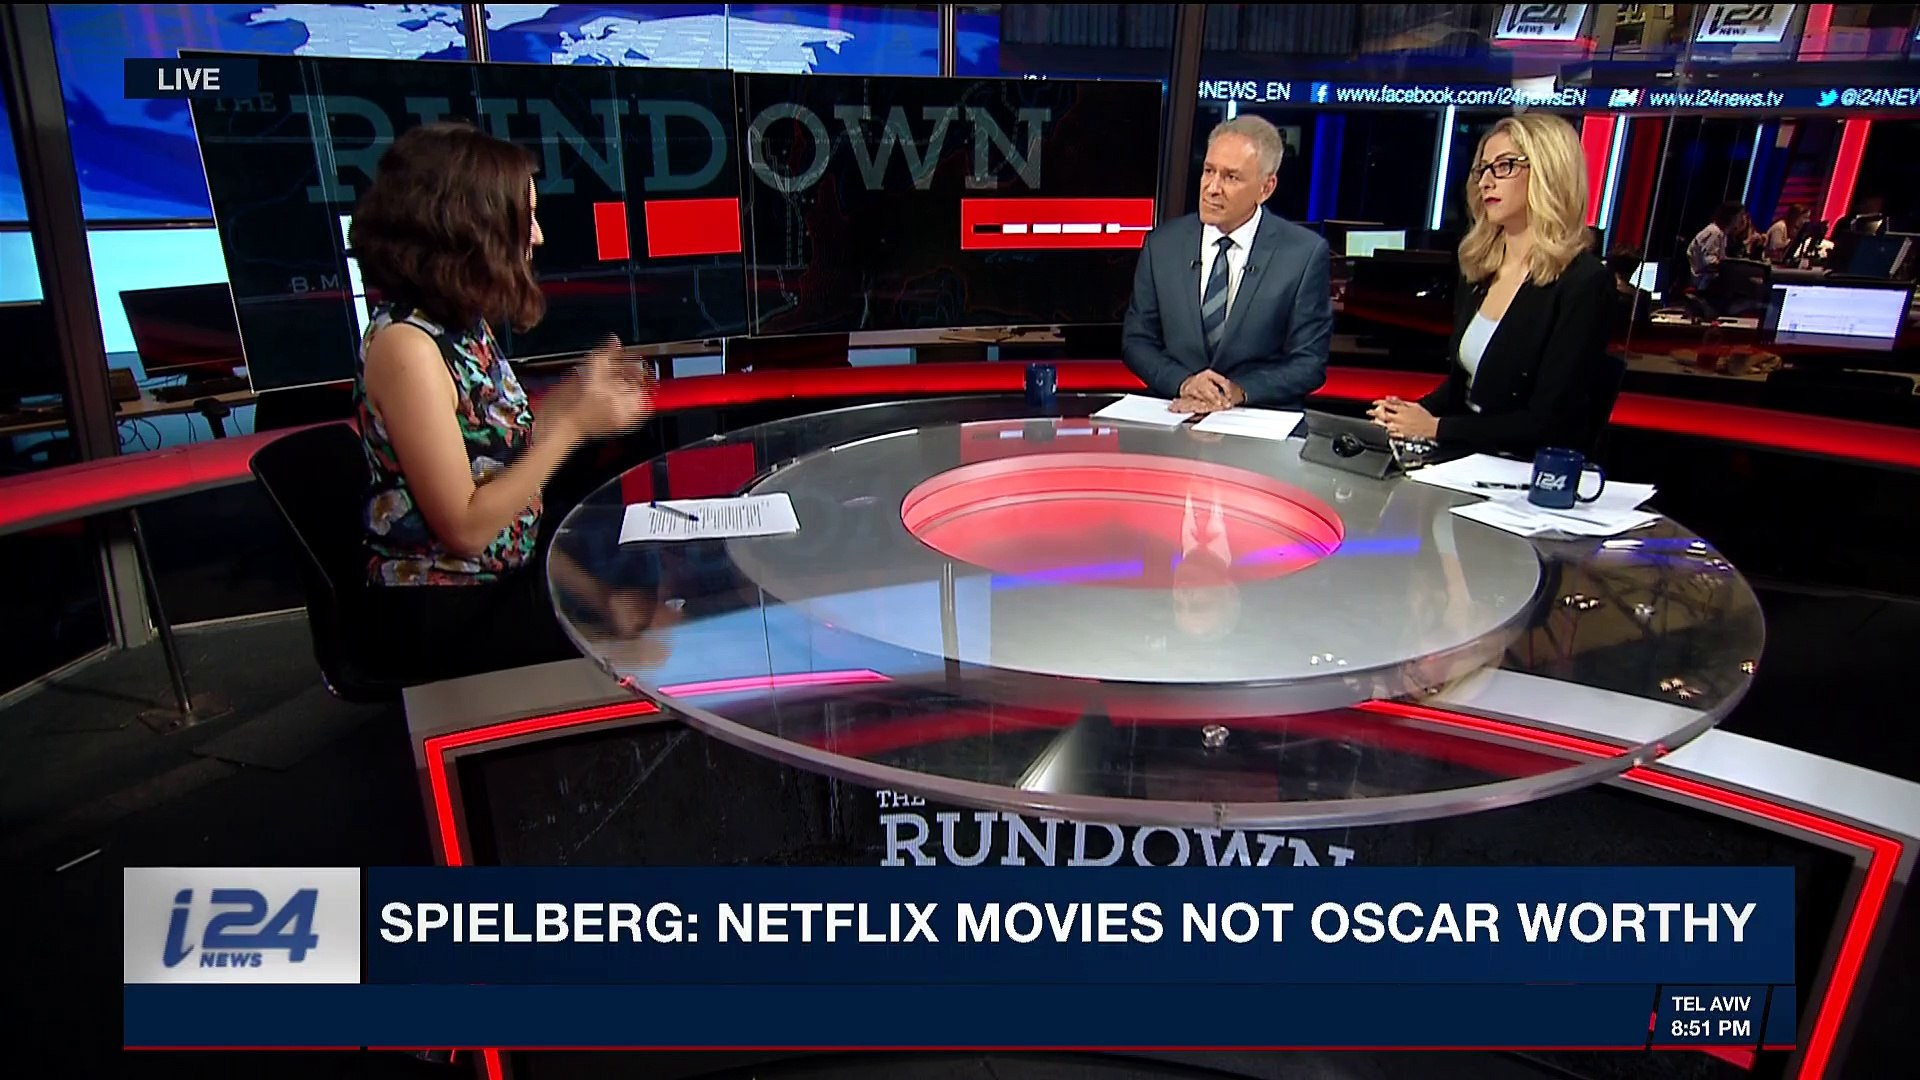 THE RUNDOWN | Spielberg: Netflix movies not Oscar worthy | Tuesday, March 27th 2018